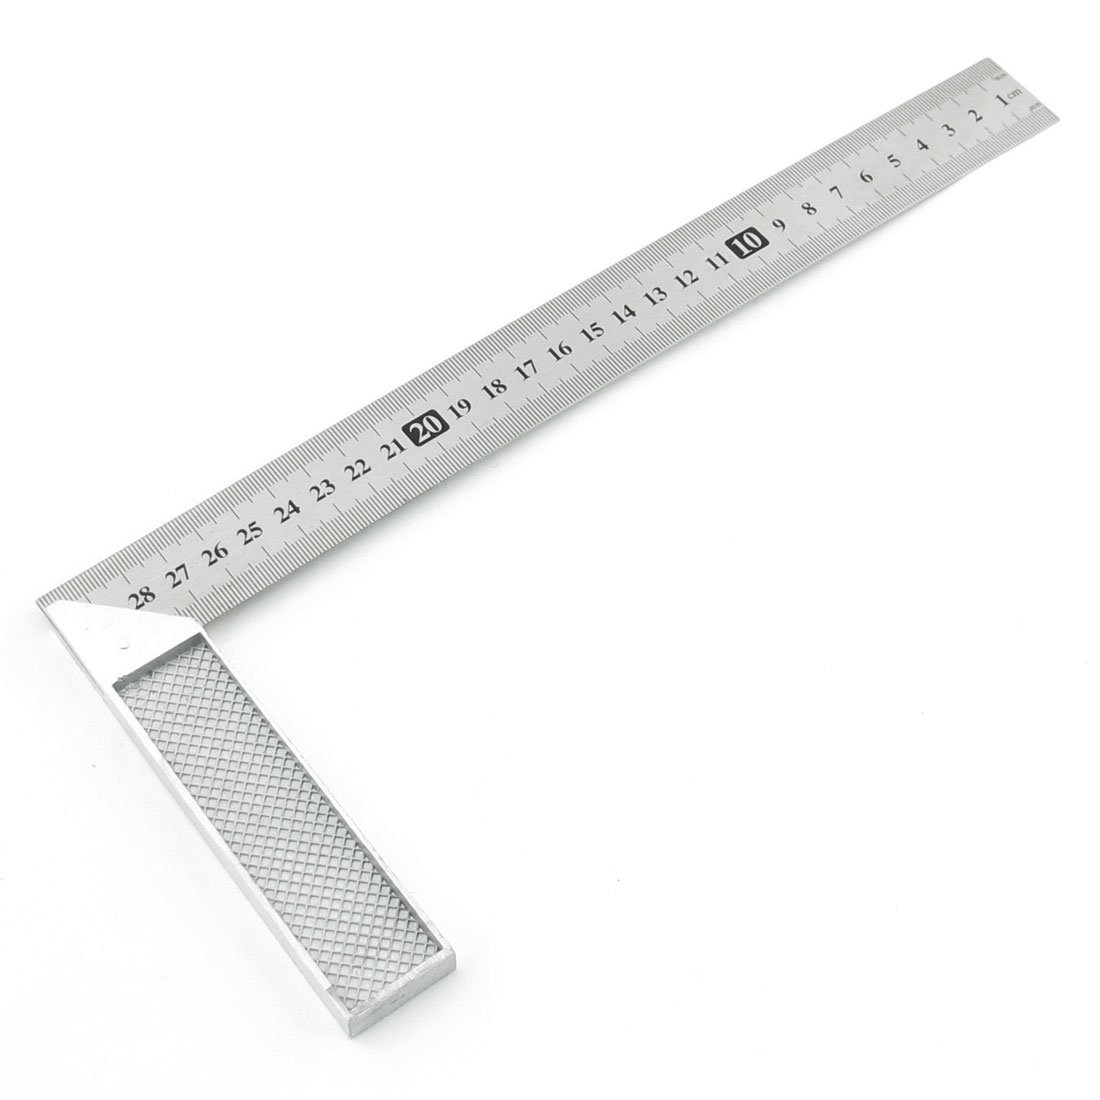 Uxcell Stainless Steel Right Measuring Angle Square Ruler, 30cm Dragonmarts Co. Ltd. / Uxcell a13110700ux0020